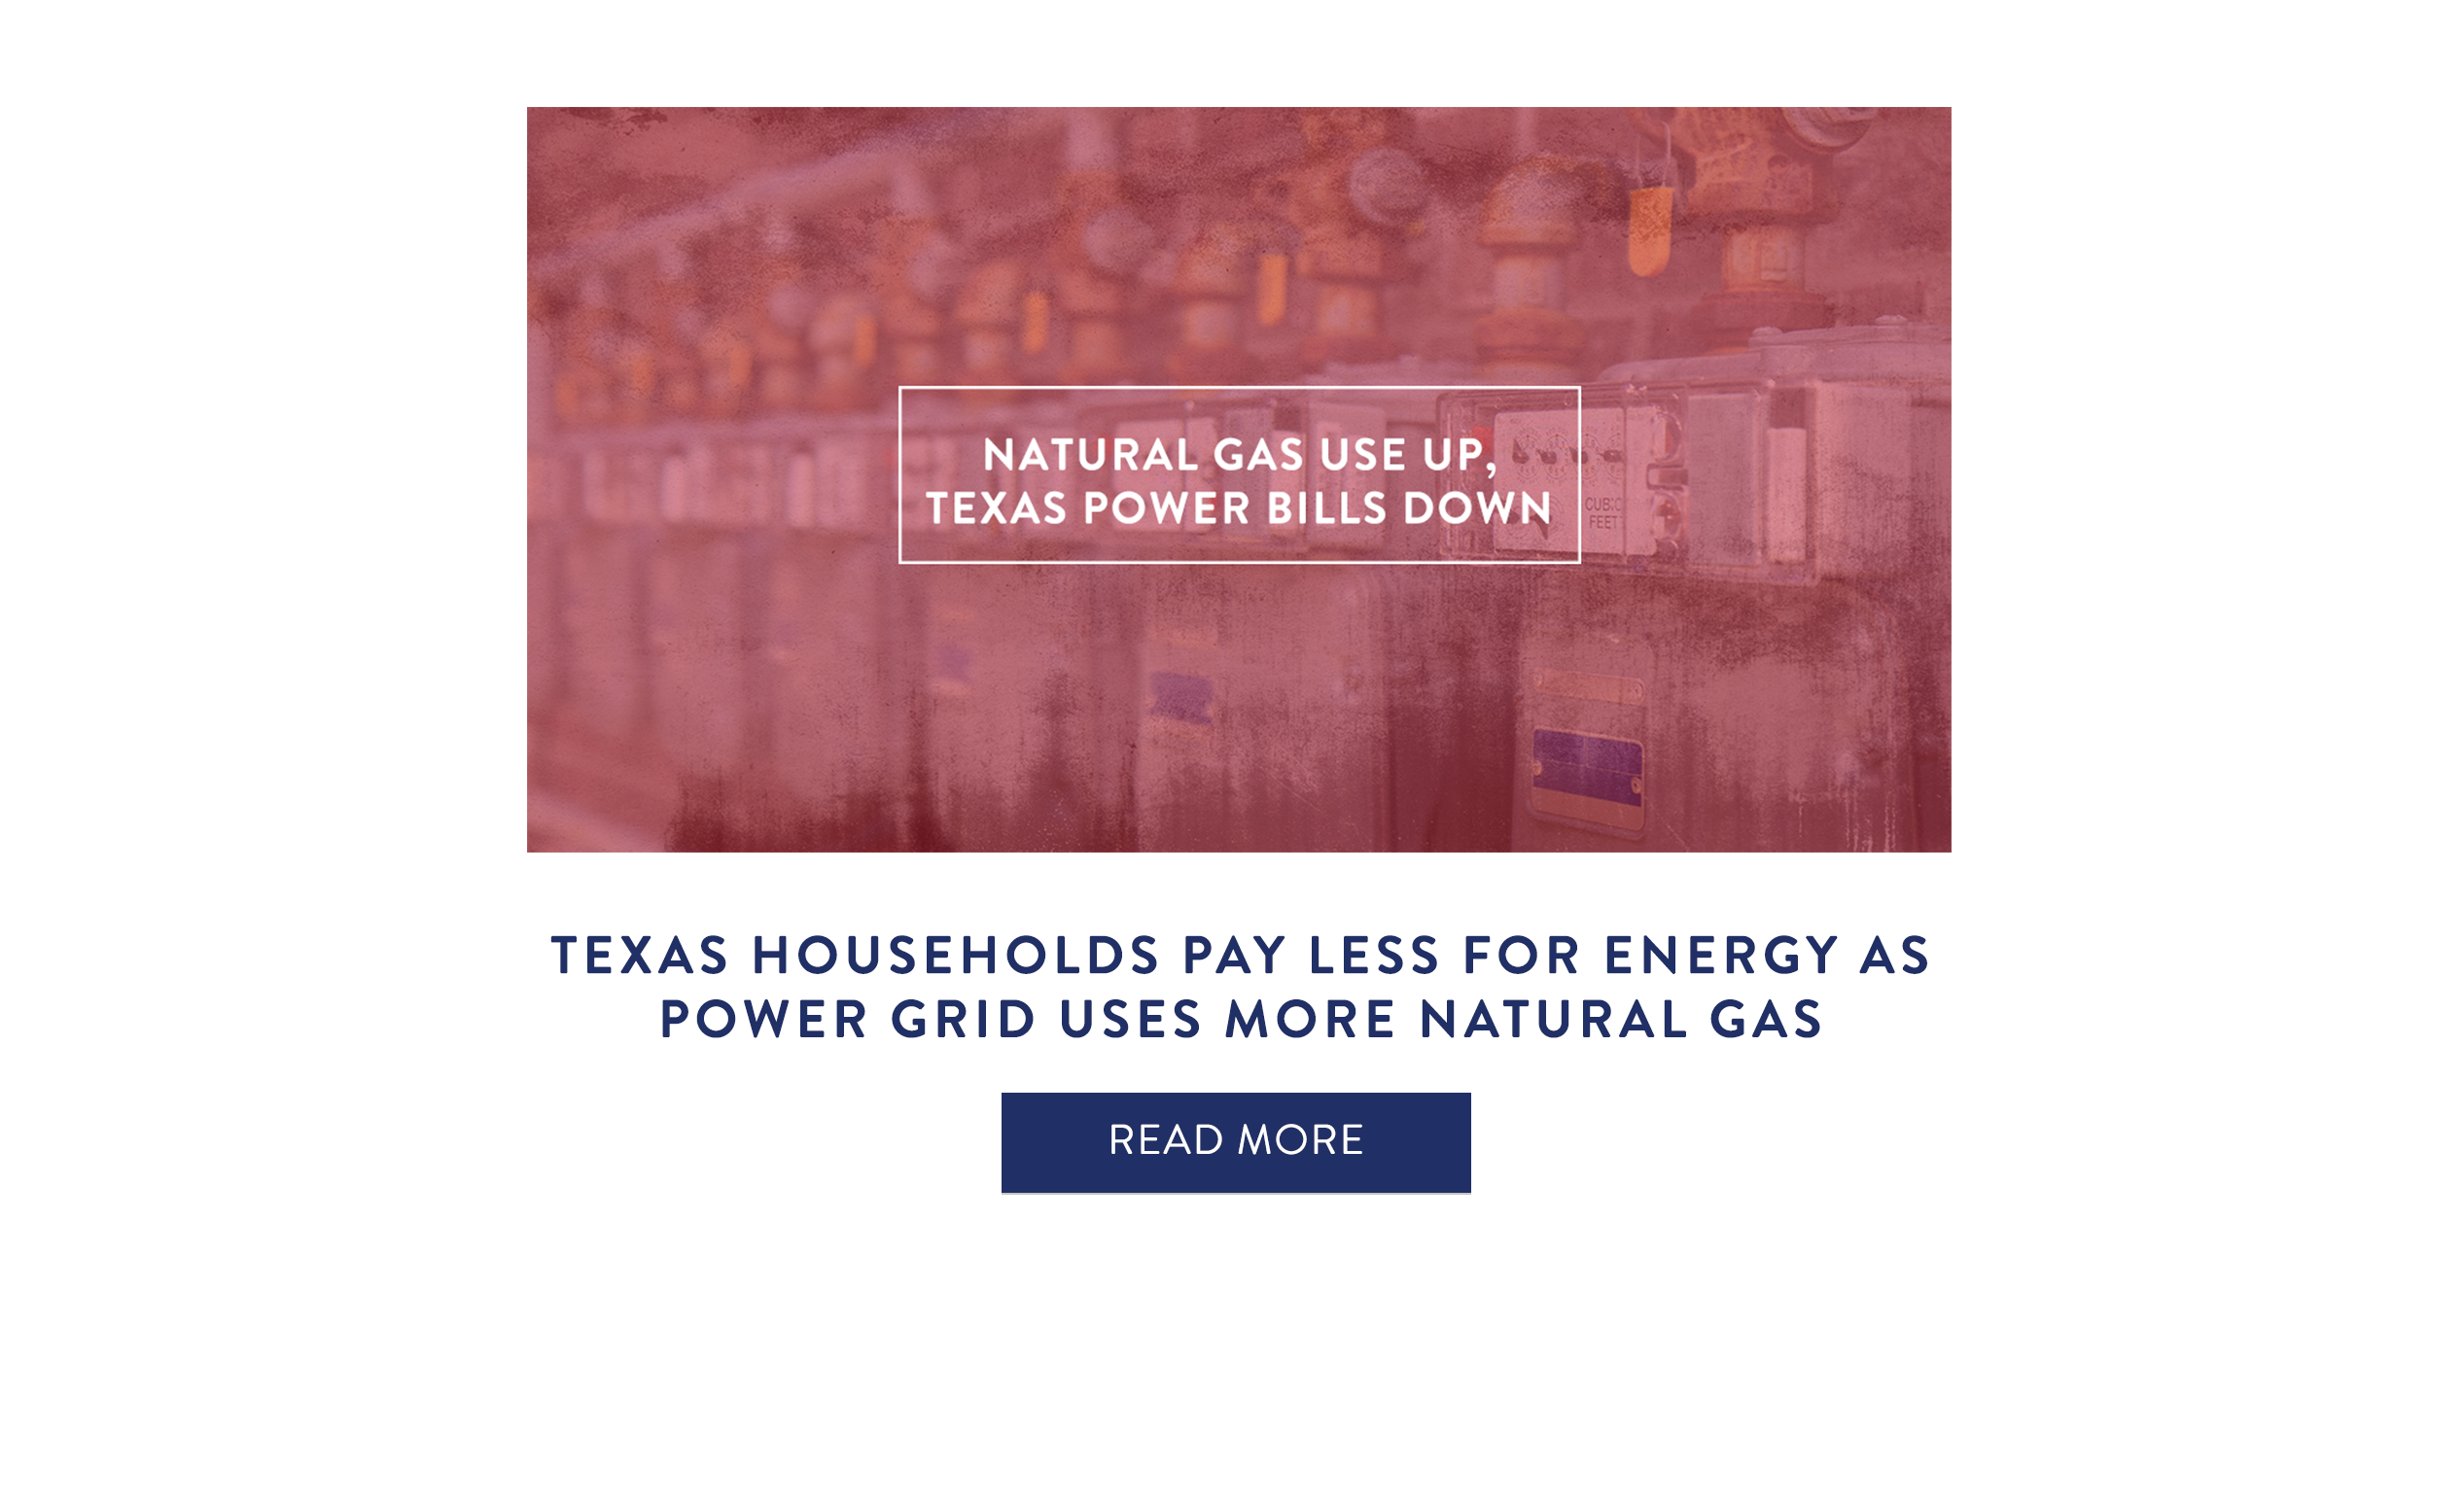 Texas Households Pay Less for Energy as Power Grid Uses More Natural Gas